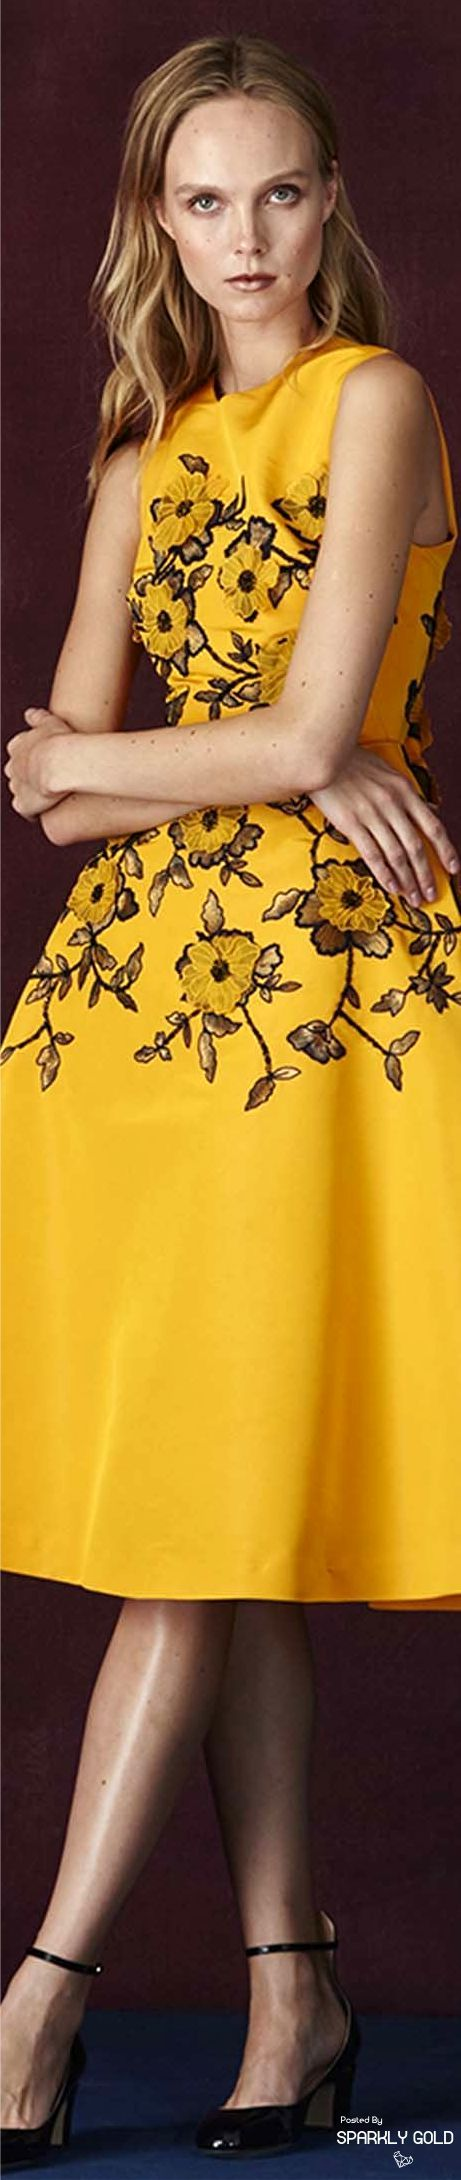 best yellow fever images on pinterest clothes costumes and